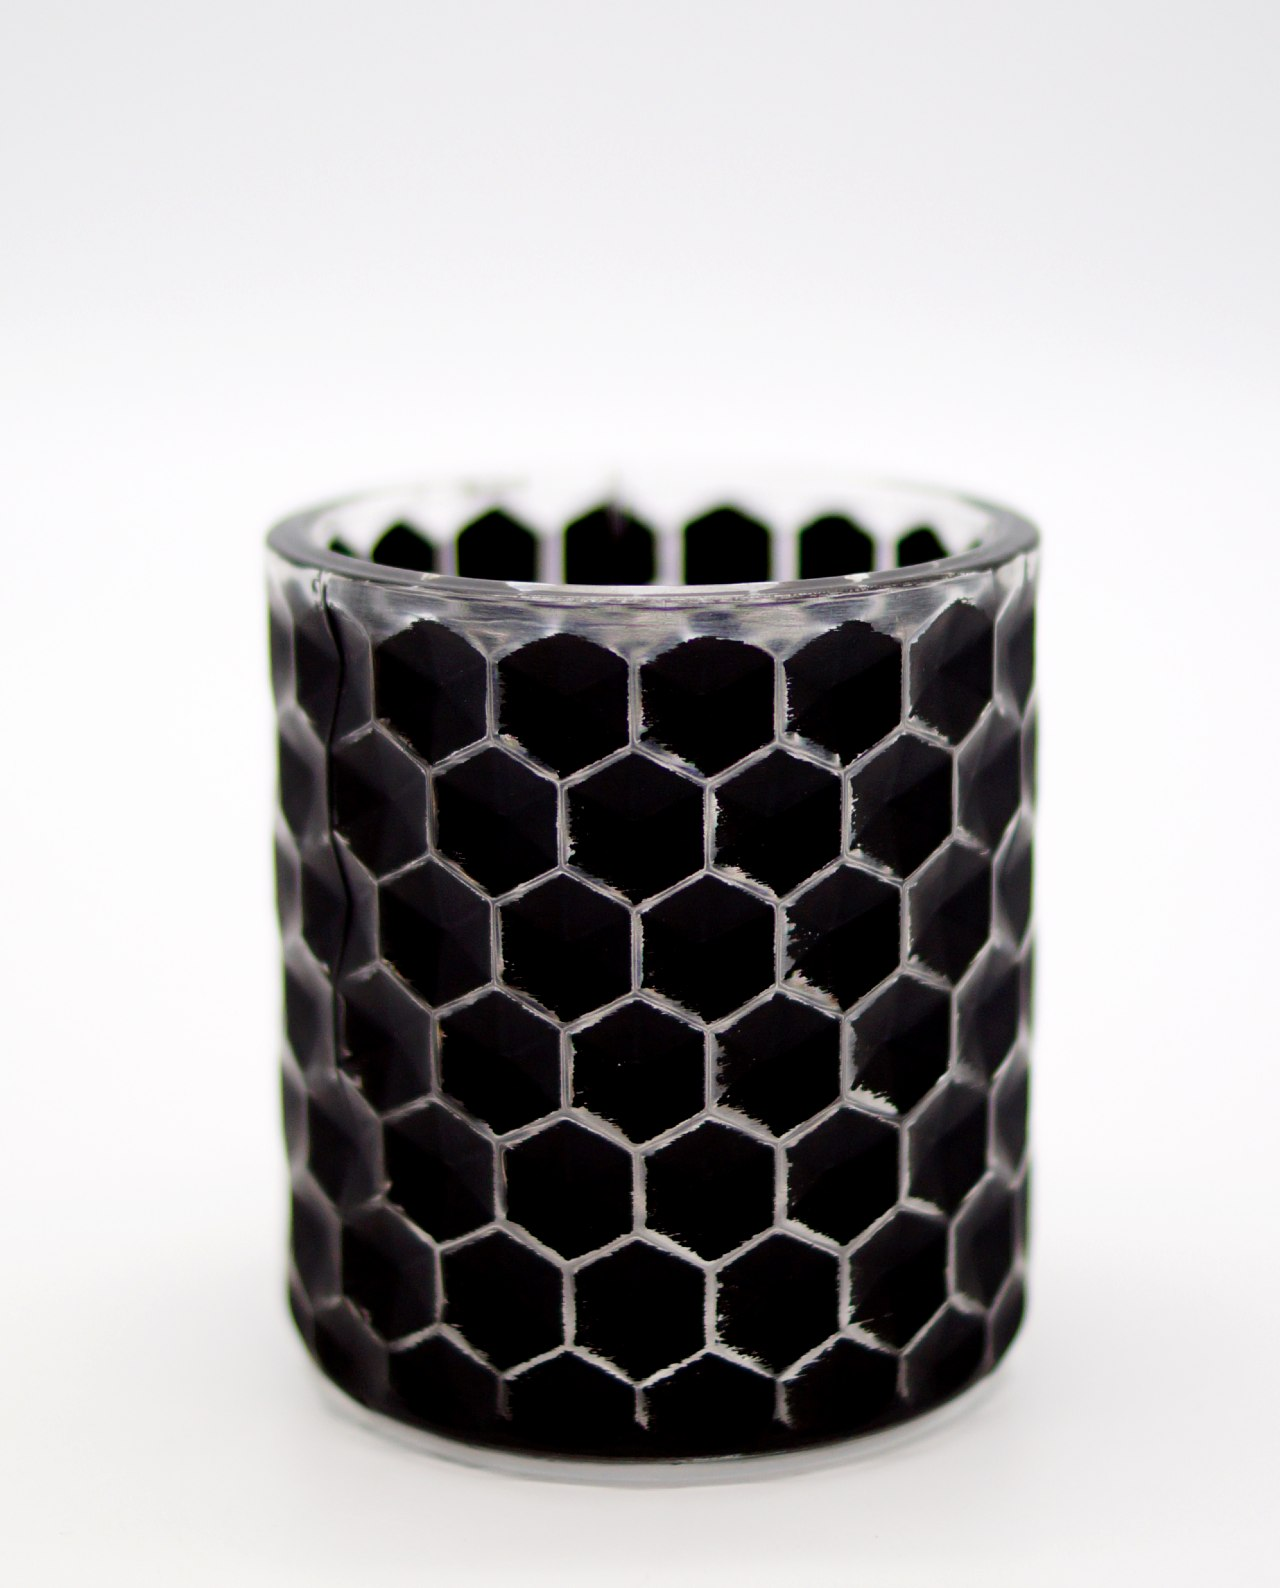 Tealight Black Glass with pattern of hives